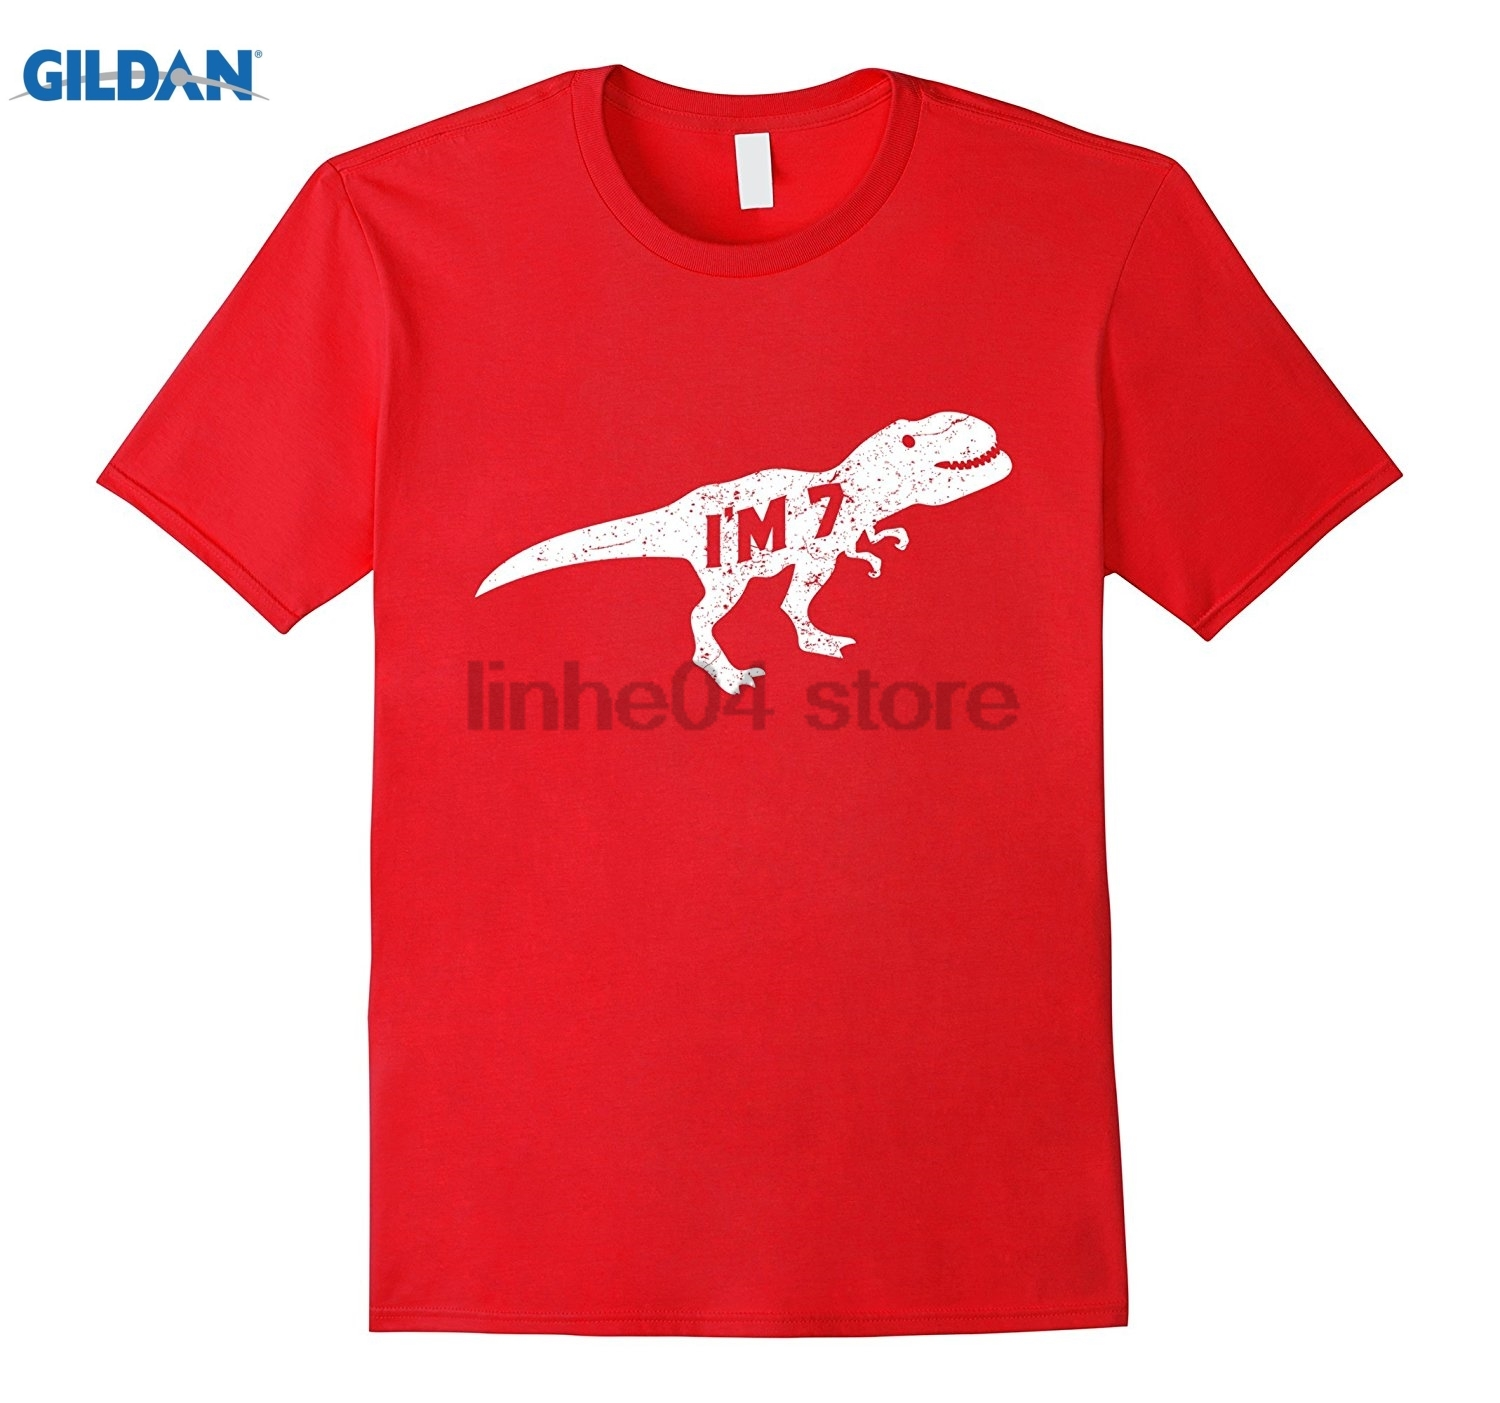 Buy Birthday Shirt 7 And Get Free Shipping On AliExpress